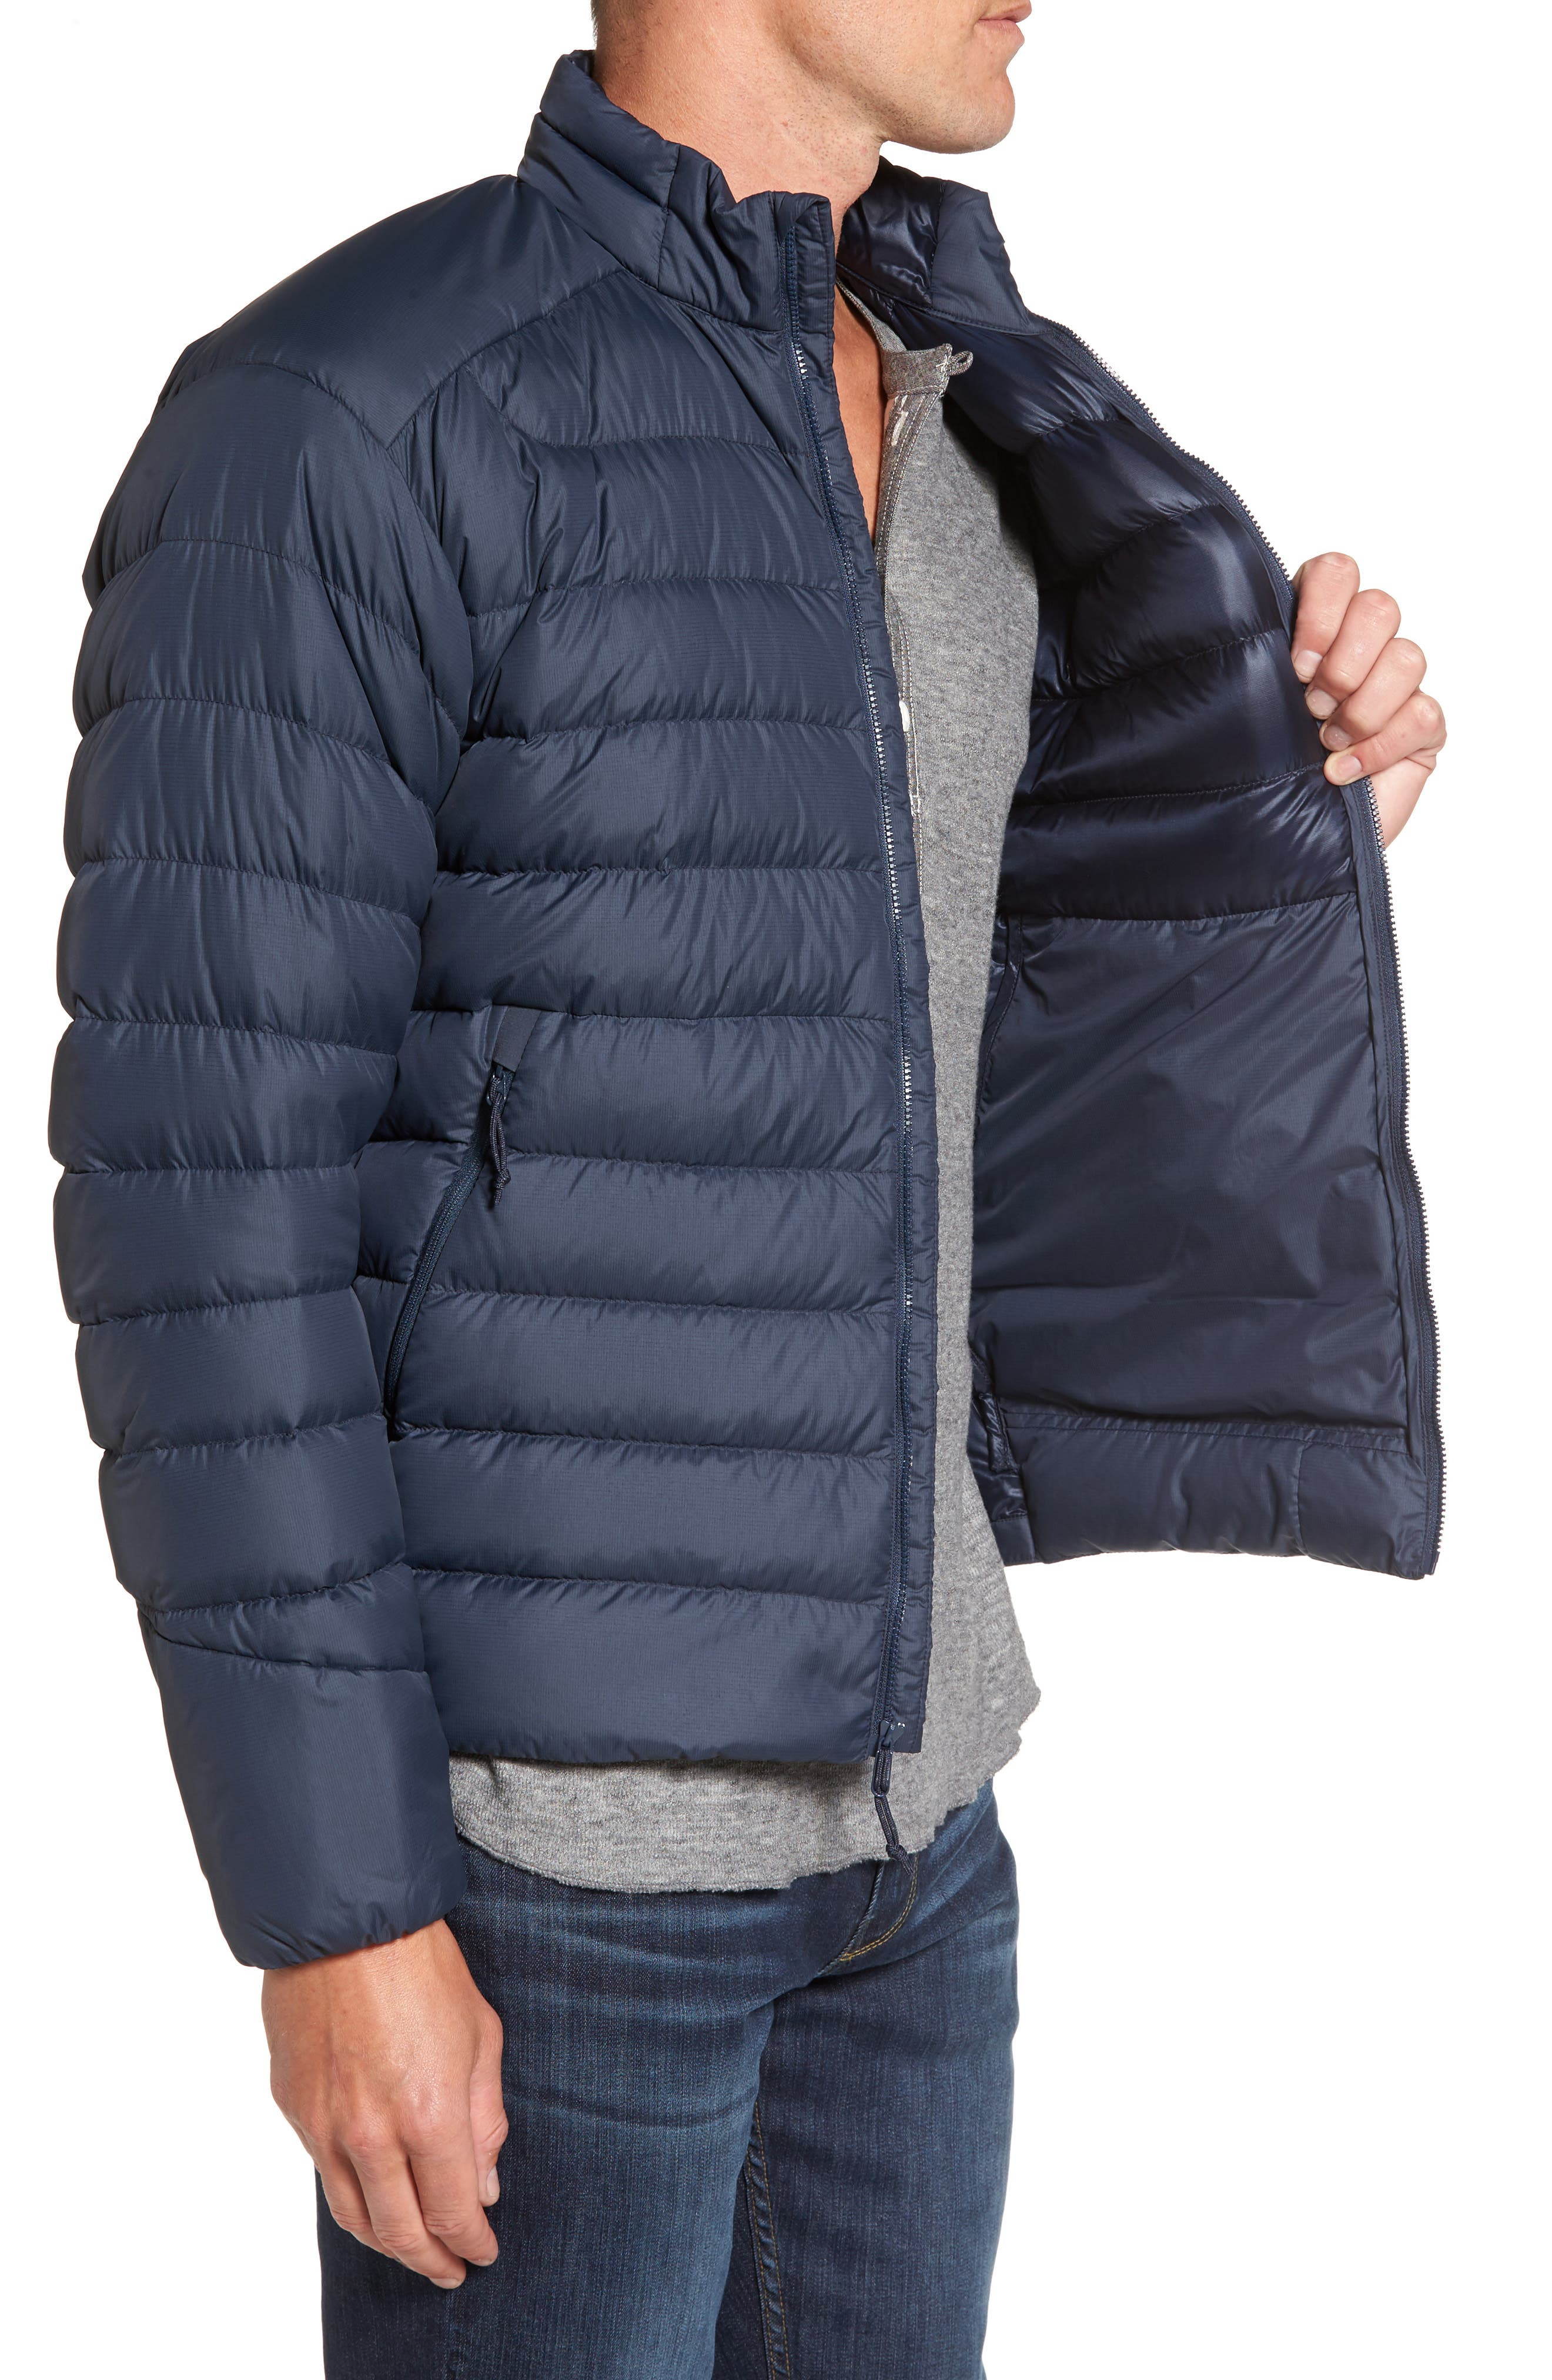 Thorium AR Water Resistant 750 Fill Power Down Jacket,                             Alternate thumbnail 3, color,                             400